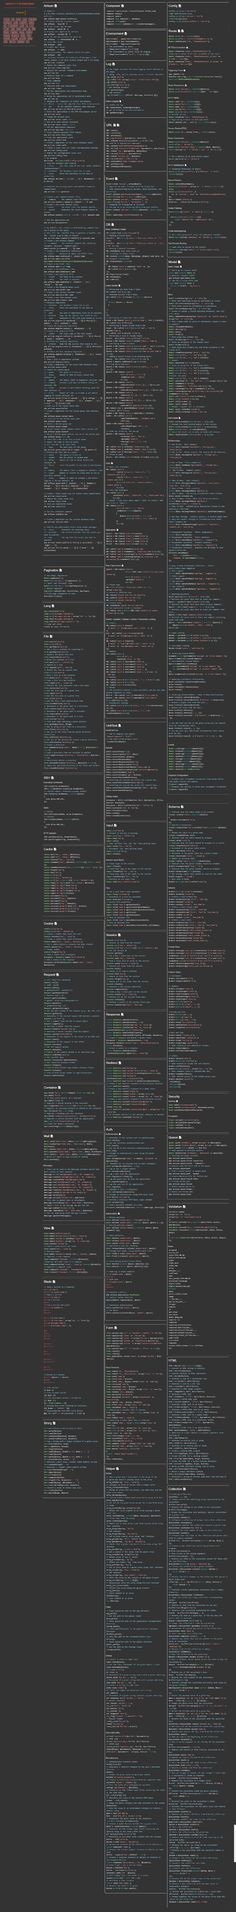 Laravel 5.1 TLS Cheat Sheet #laravel #laravel5.1 #laraveldevelopment…